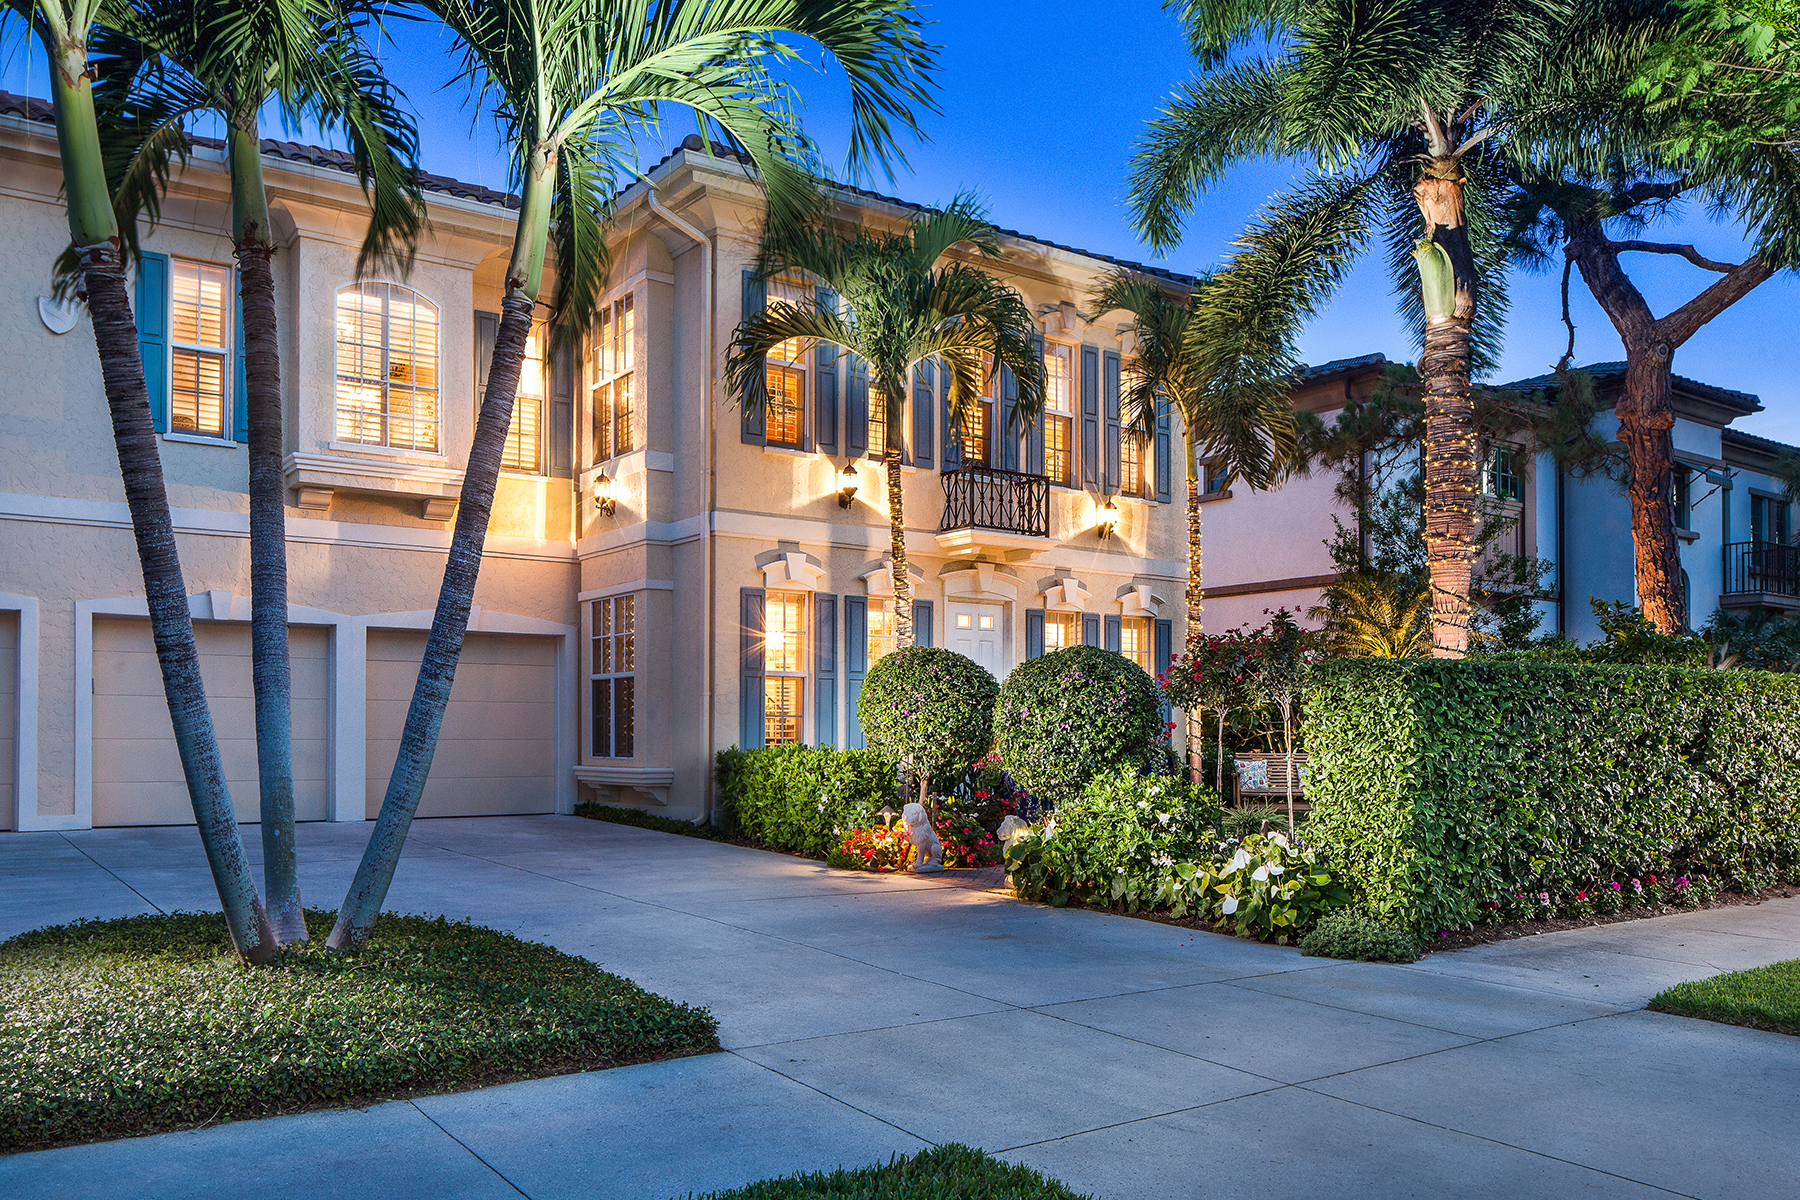 Condominium for Sale at OLDE NAPLES - LAS DUNAS 370 2nd Ave S Naples, Florida, 34102 United States